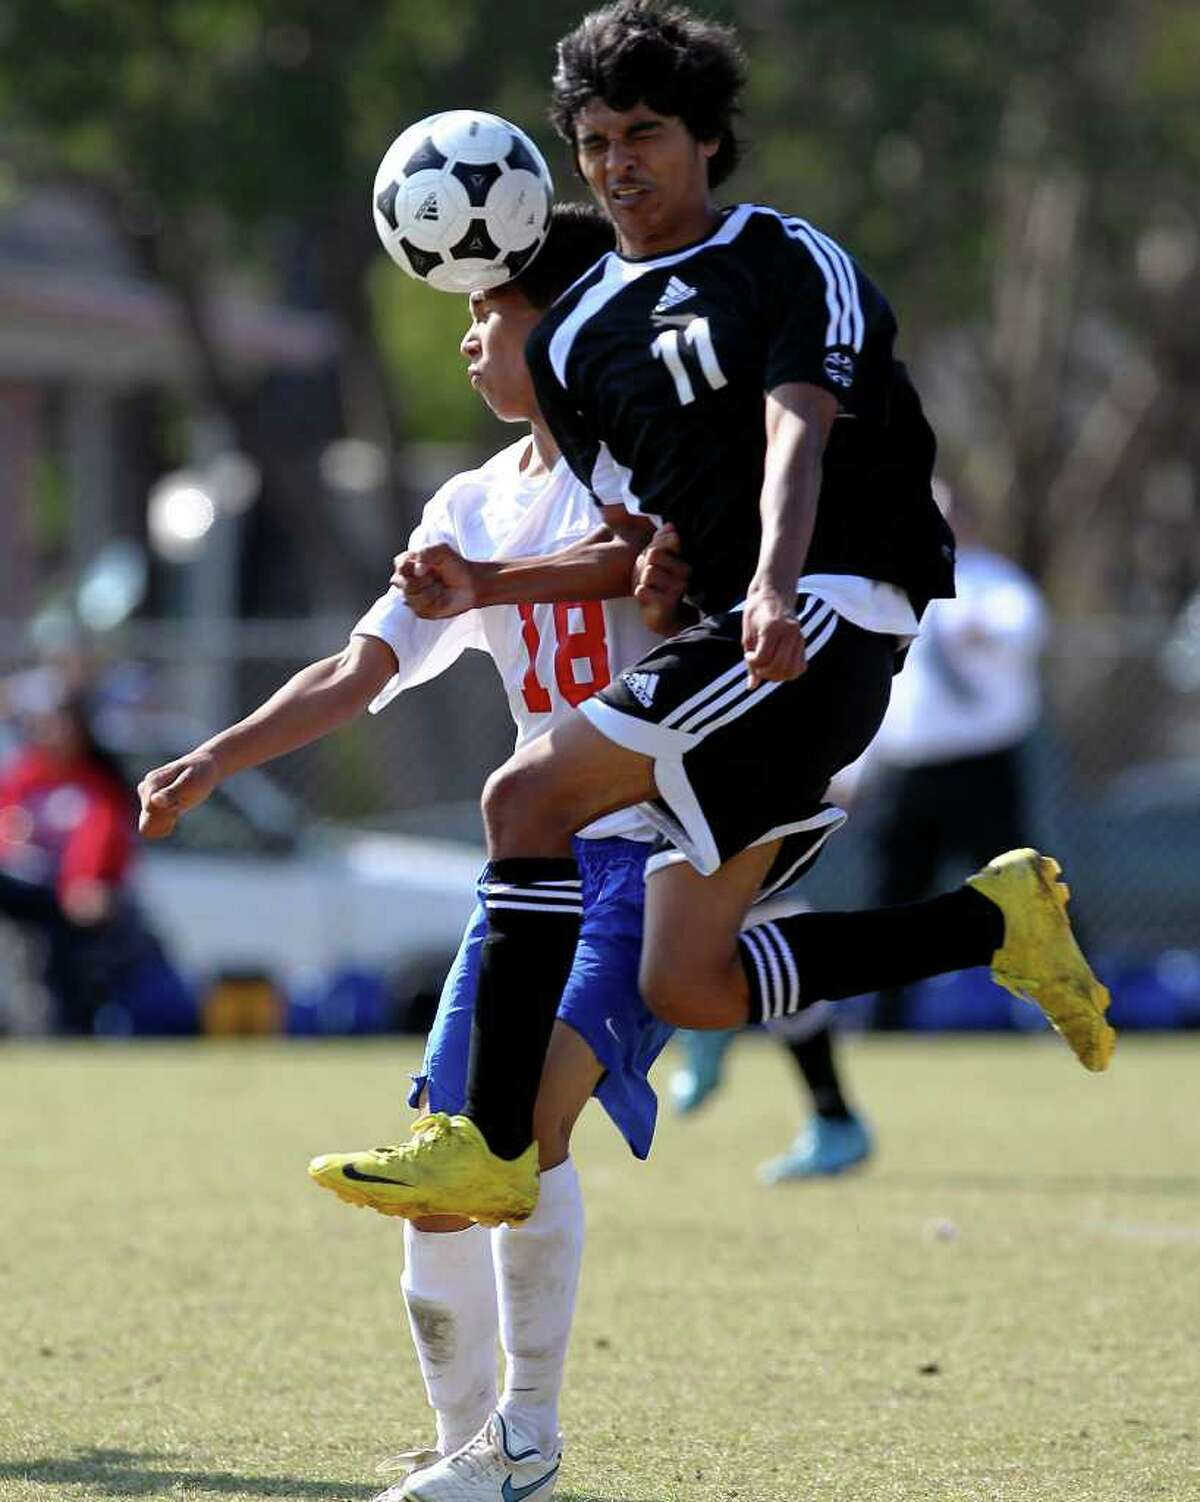 Edison's Jorge Rincon (11) and Jefferson's Guerrero Osvaldo (18) collide on a header in boys soccer at San Antonio ISD Spring Sports Complex on Tuesday, Mar. 15, 2011. Jefferson defeated Edison, 3-1.